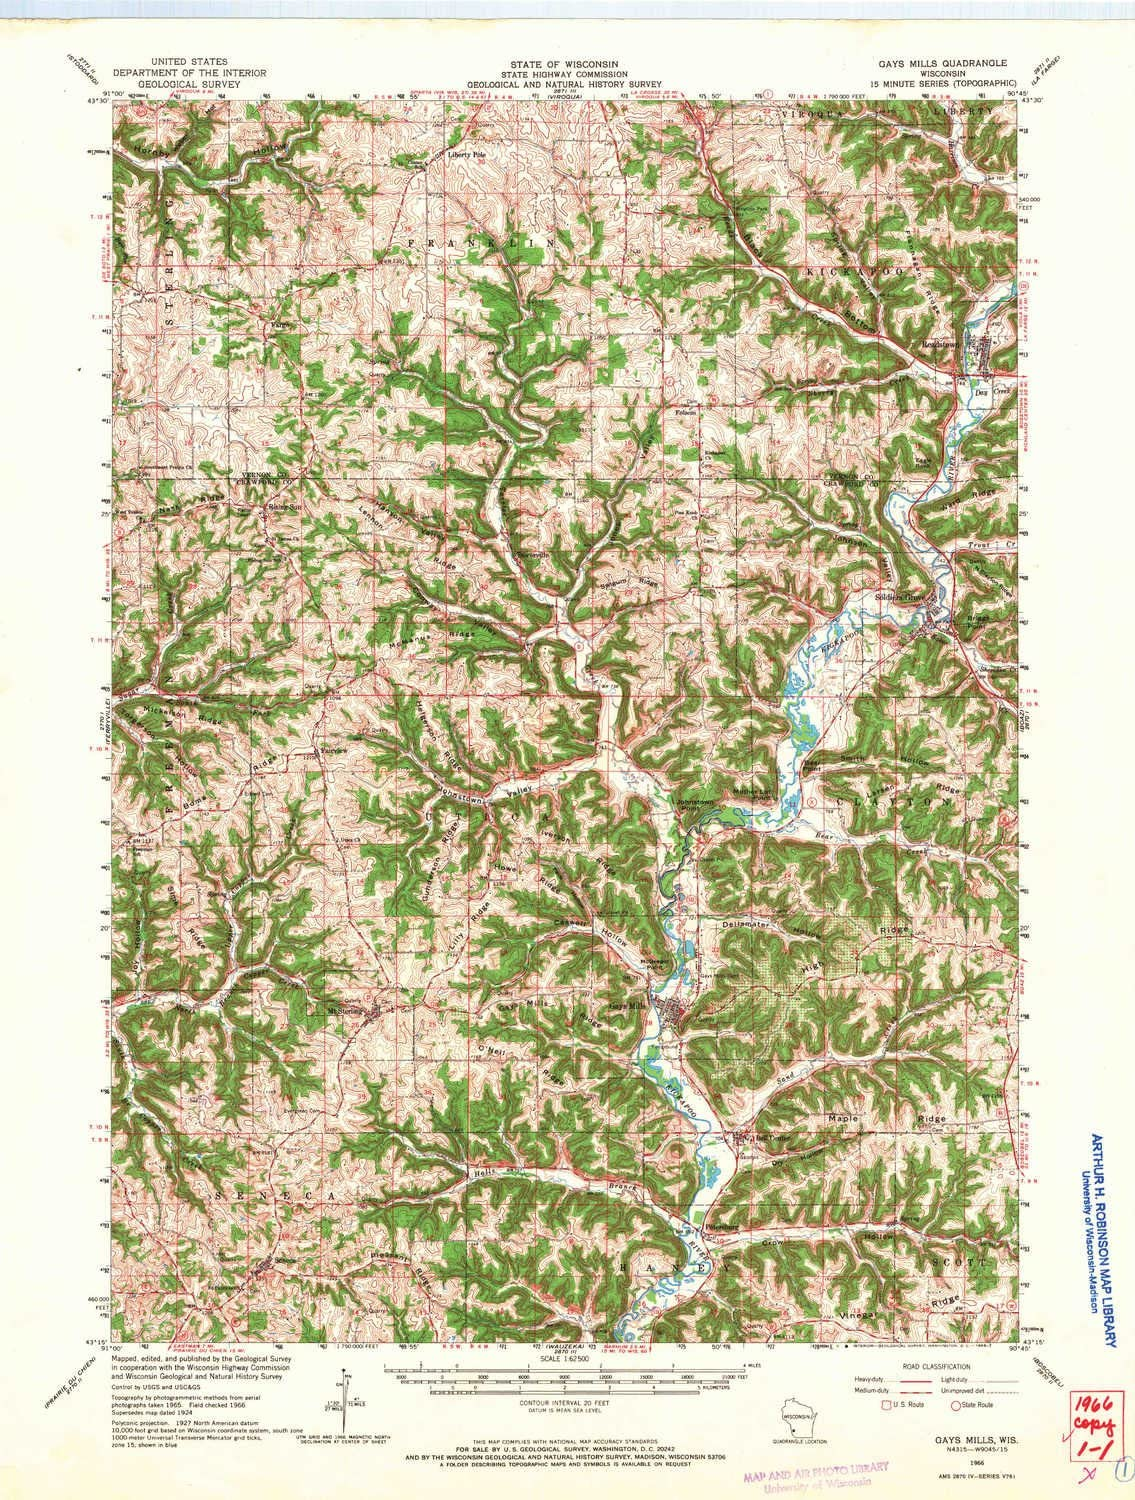 YellowMaps Super intense SALE Gays Mills WI topo Ranking TOP11 map Scale X 1:62500 Minute 15